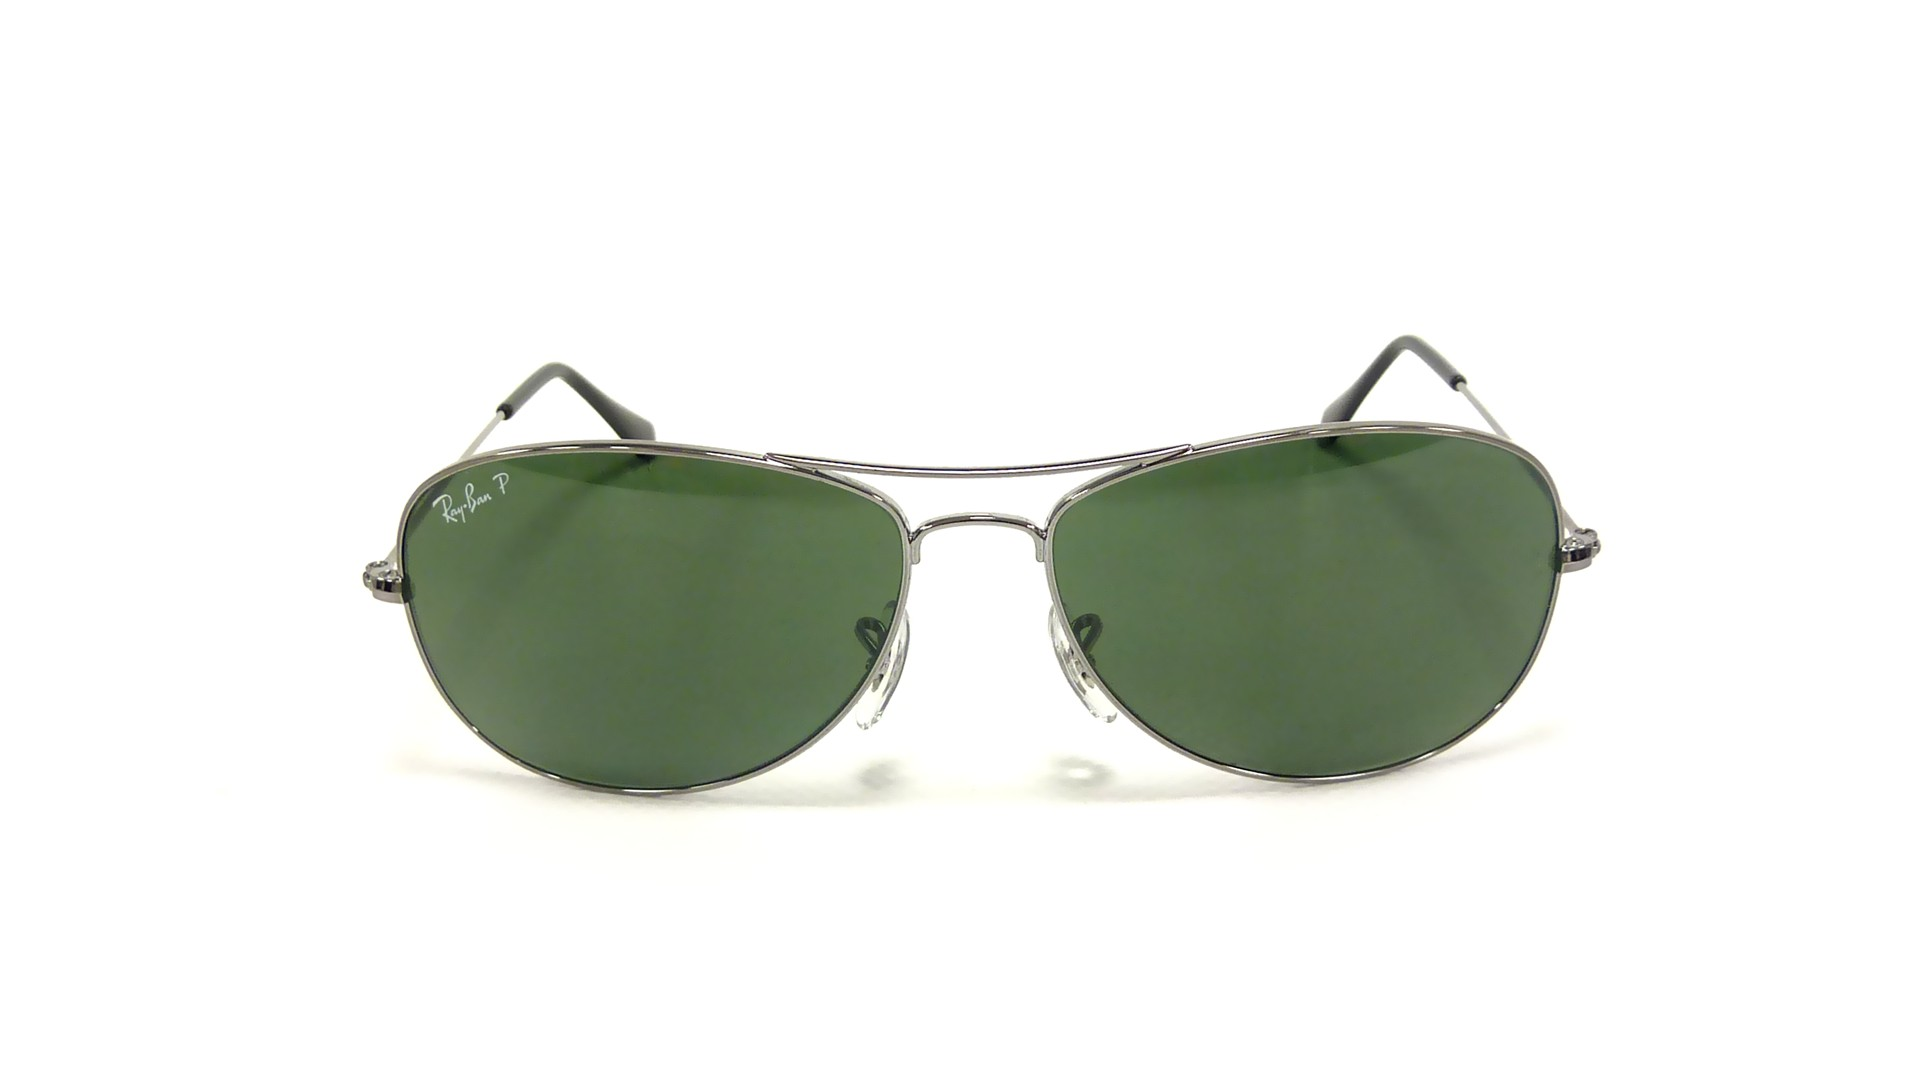 Ray Ban Sunglasses Cockpit Rb 3362 Cockpit 004 58